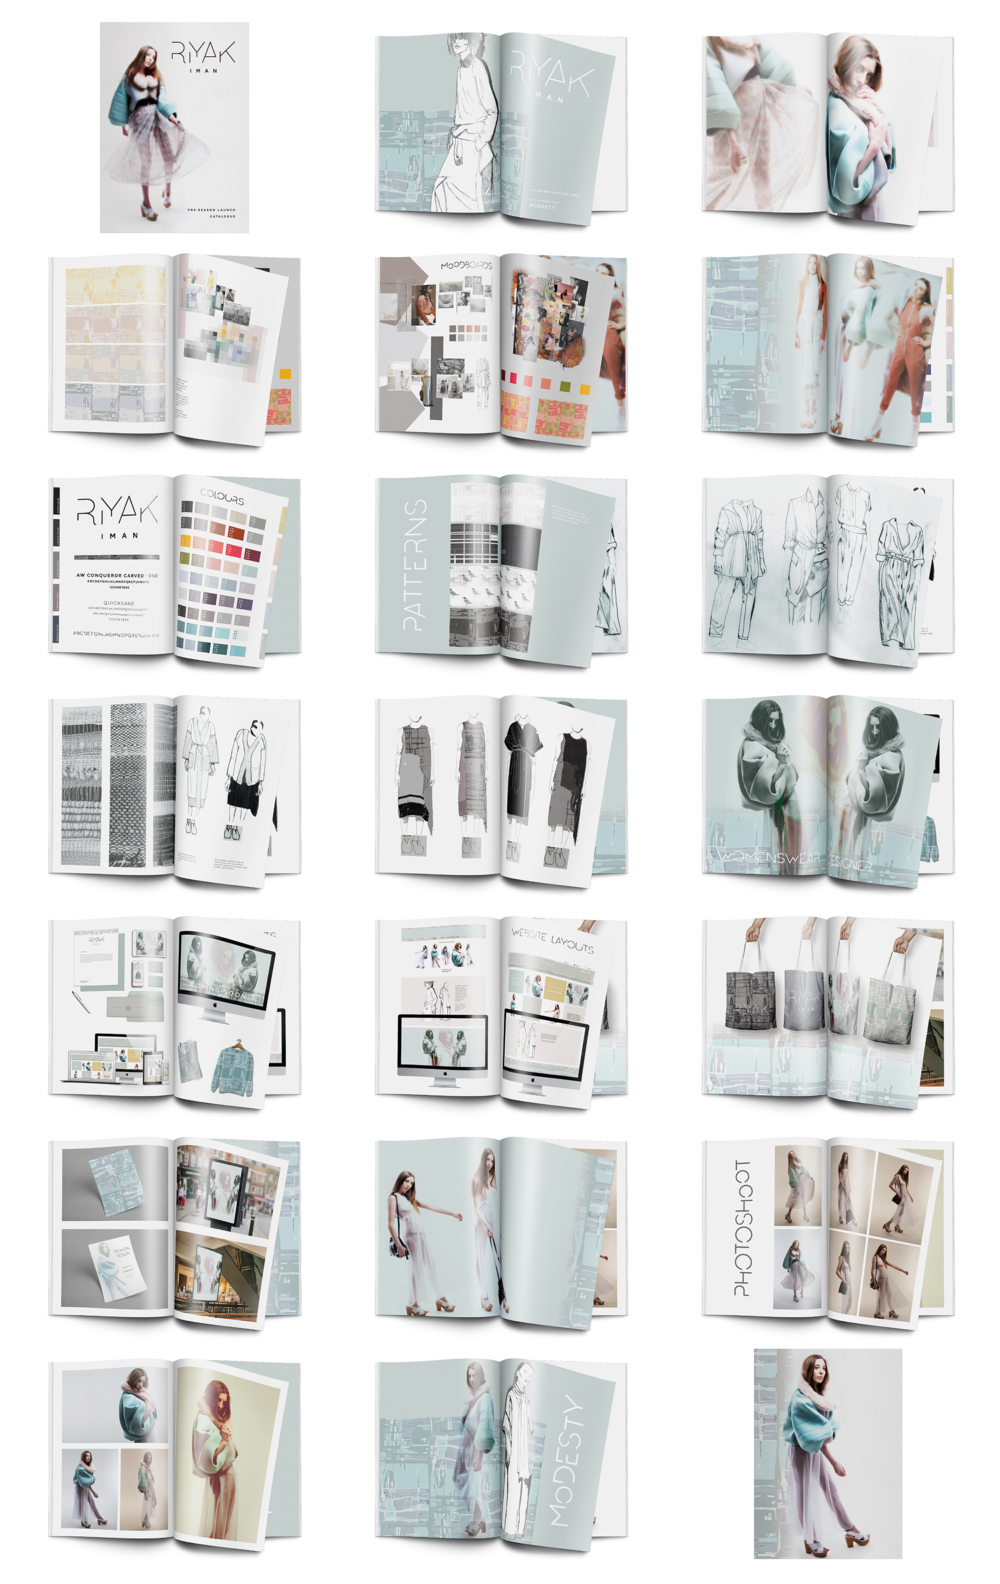 A2 - RIYAK Pre-Launch Catalogue V3-01 Small.png